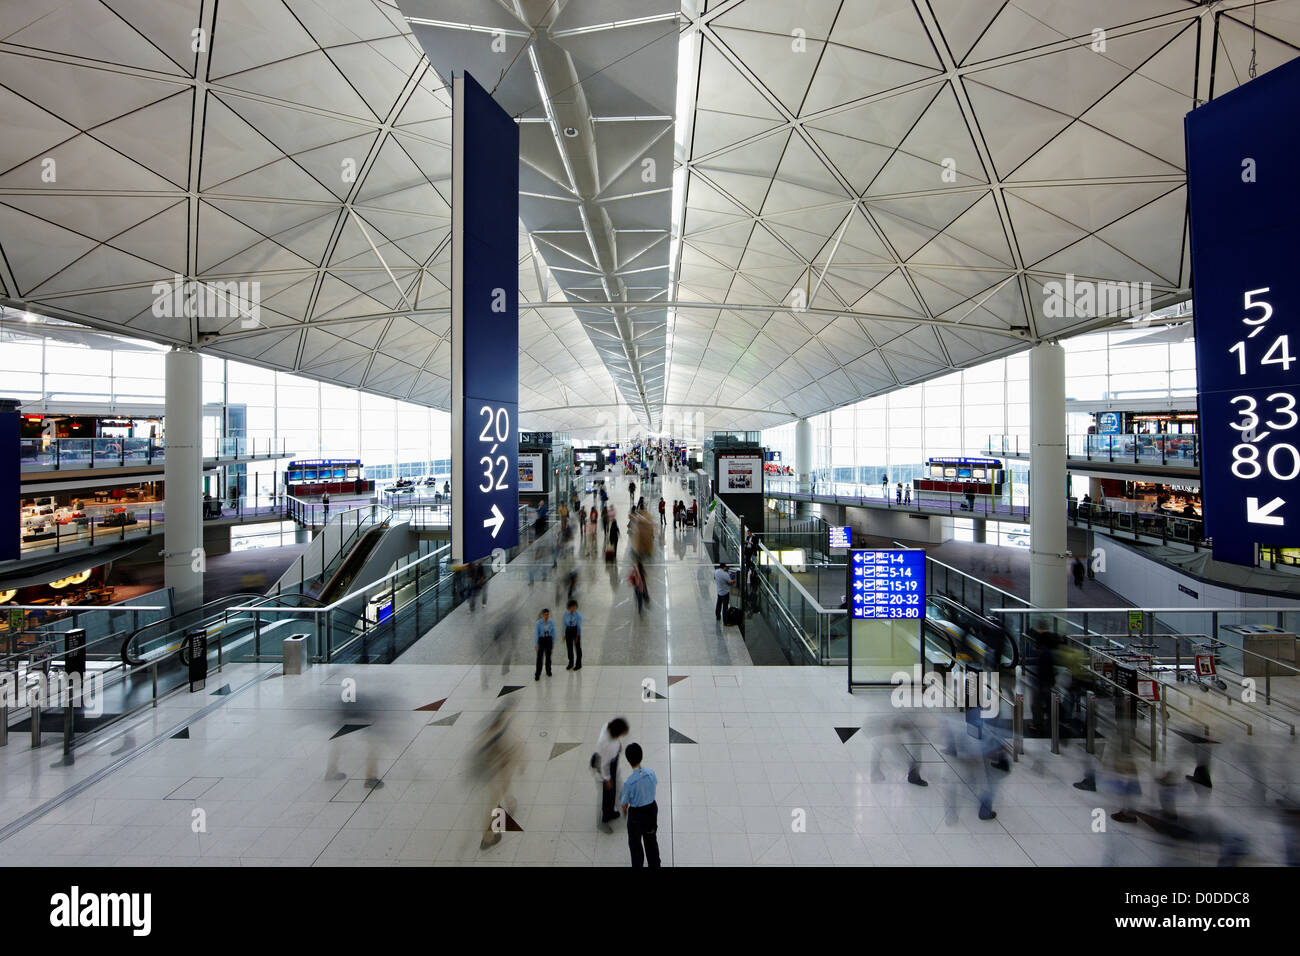 Hong Kong International Airport Terminal - Stock Image